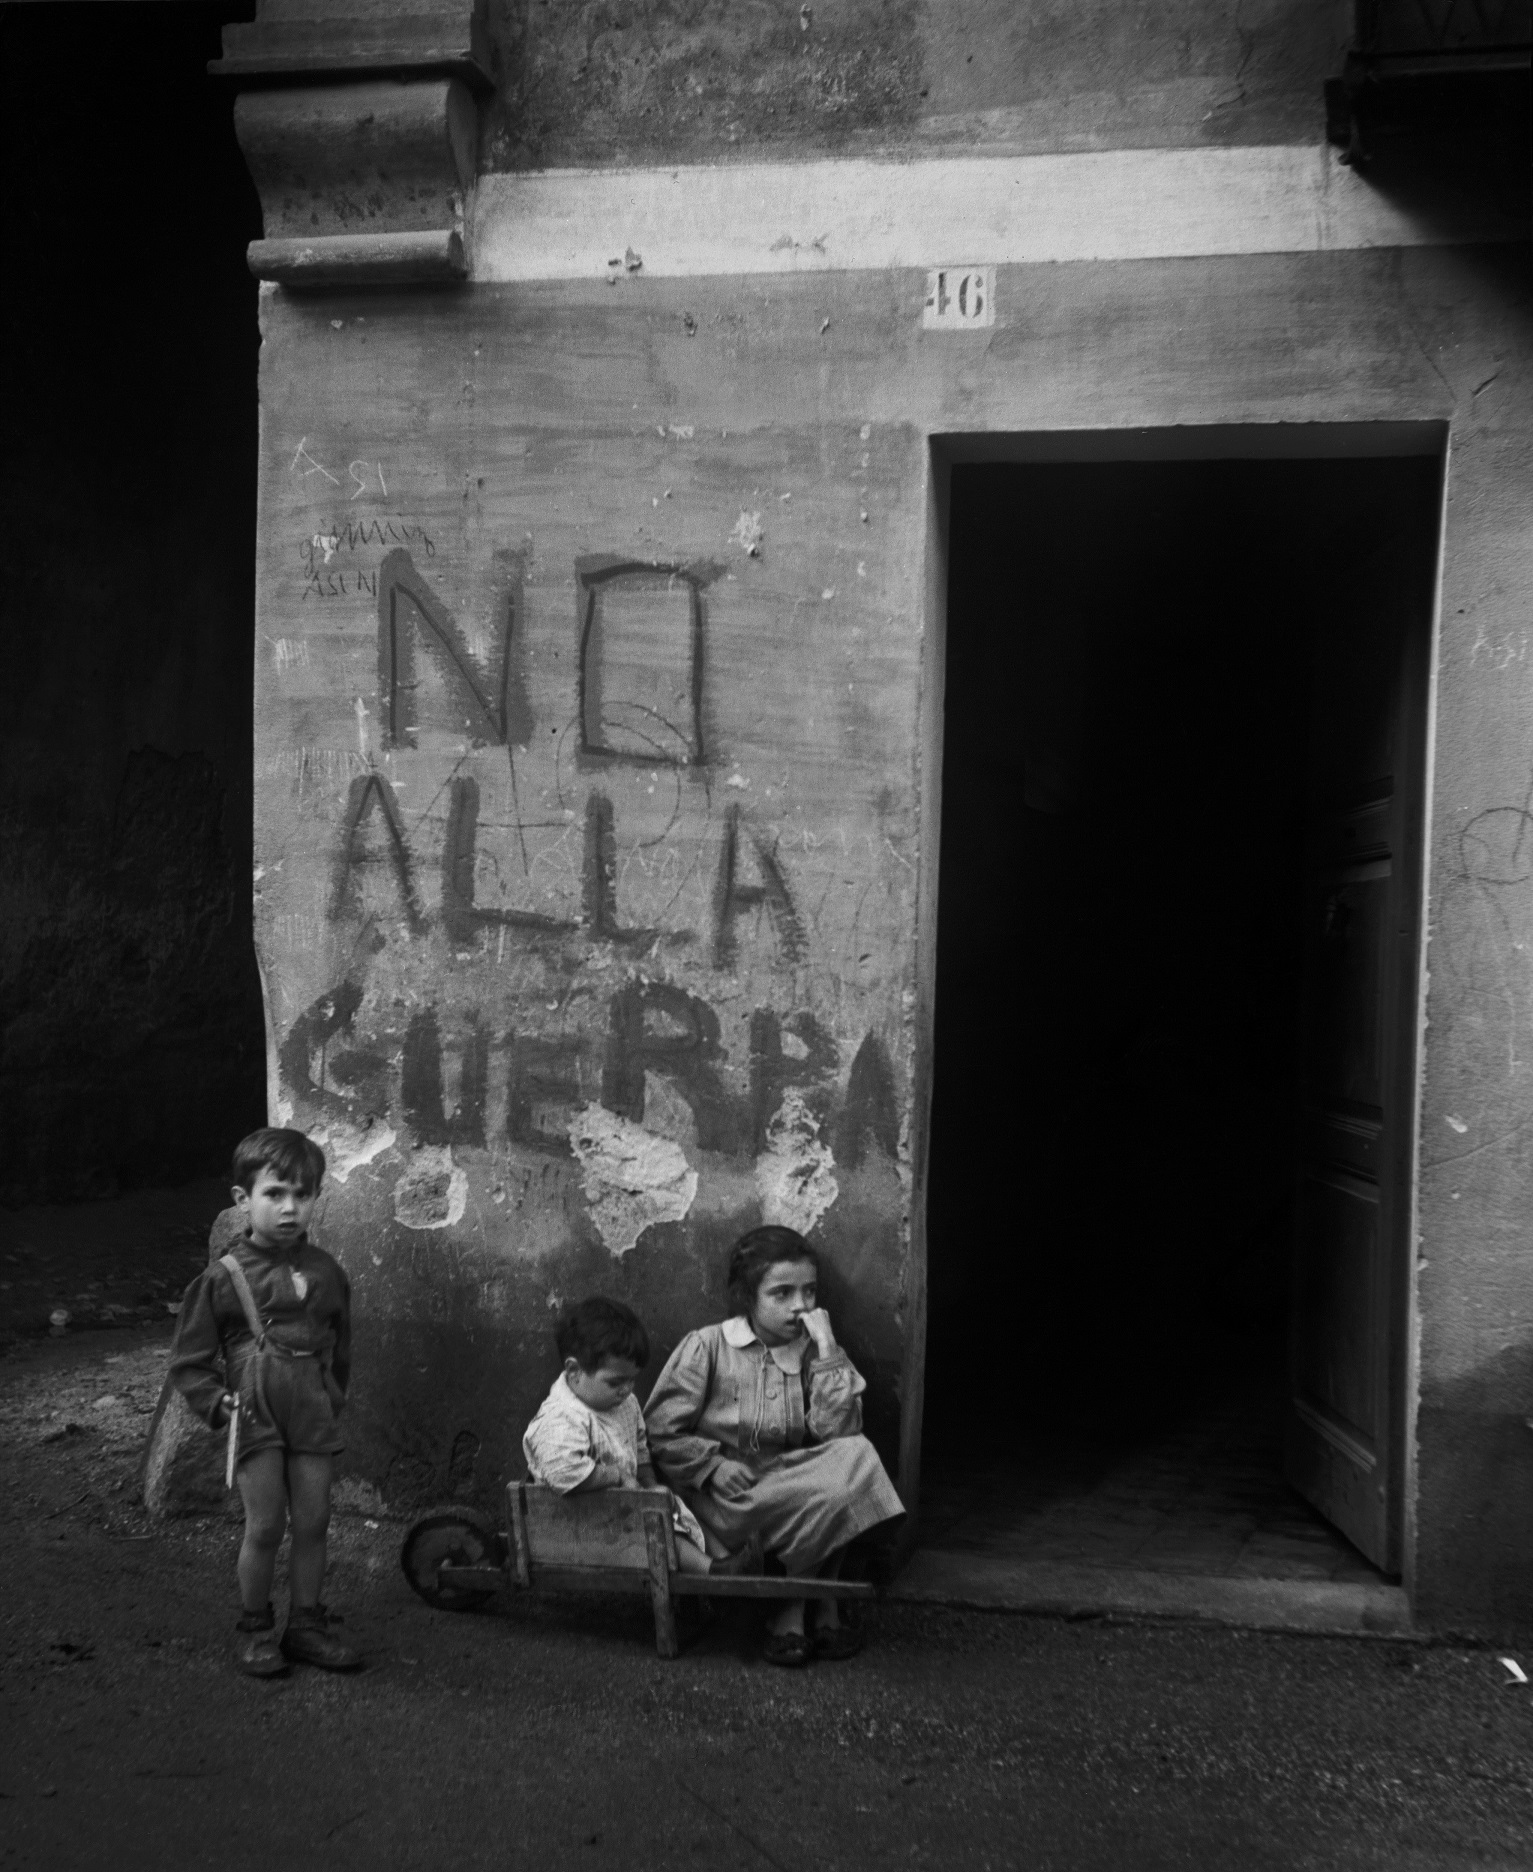 """ITALY. Genua. 1946. Writing on the wall: """"No alla guerra"""" (""""No to war""""). Italy was..."""